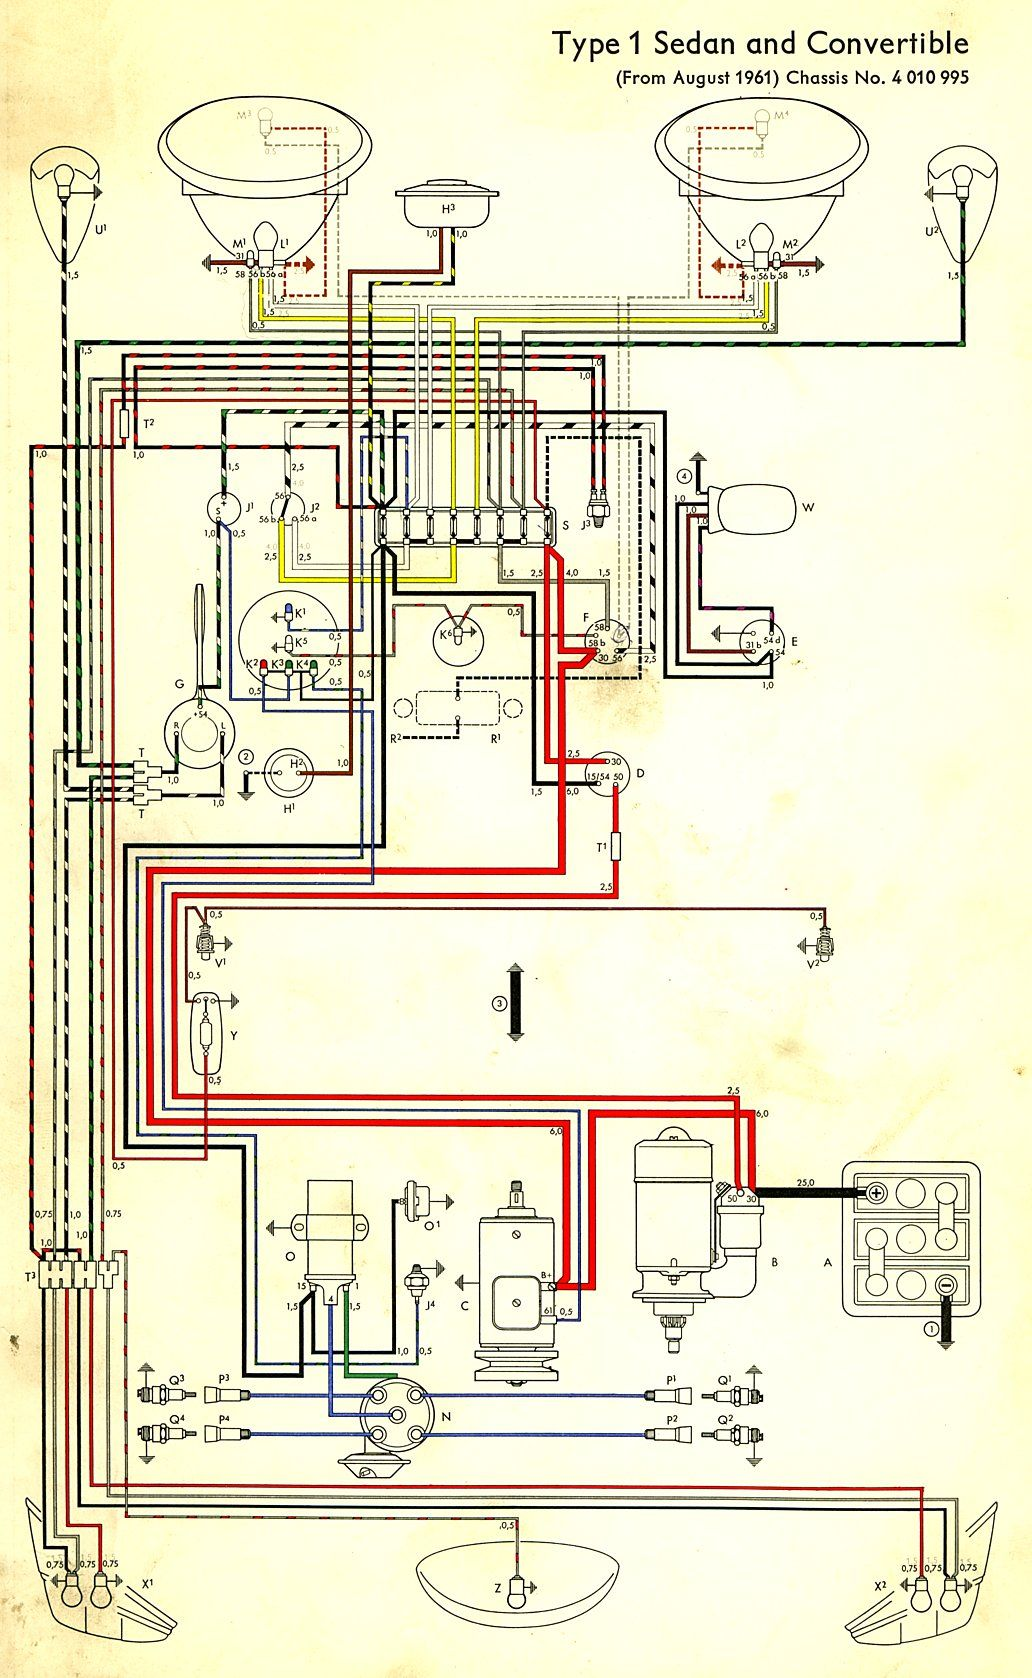 wiring diagram in color 1964 vw bug beetle convertible the samba rh pinterest com Simple Wiring Diagrams Residential Electrical Wiring Diagrams